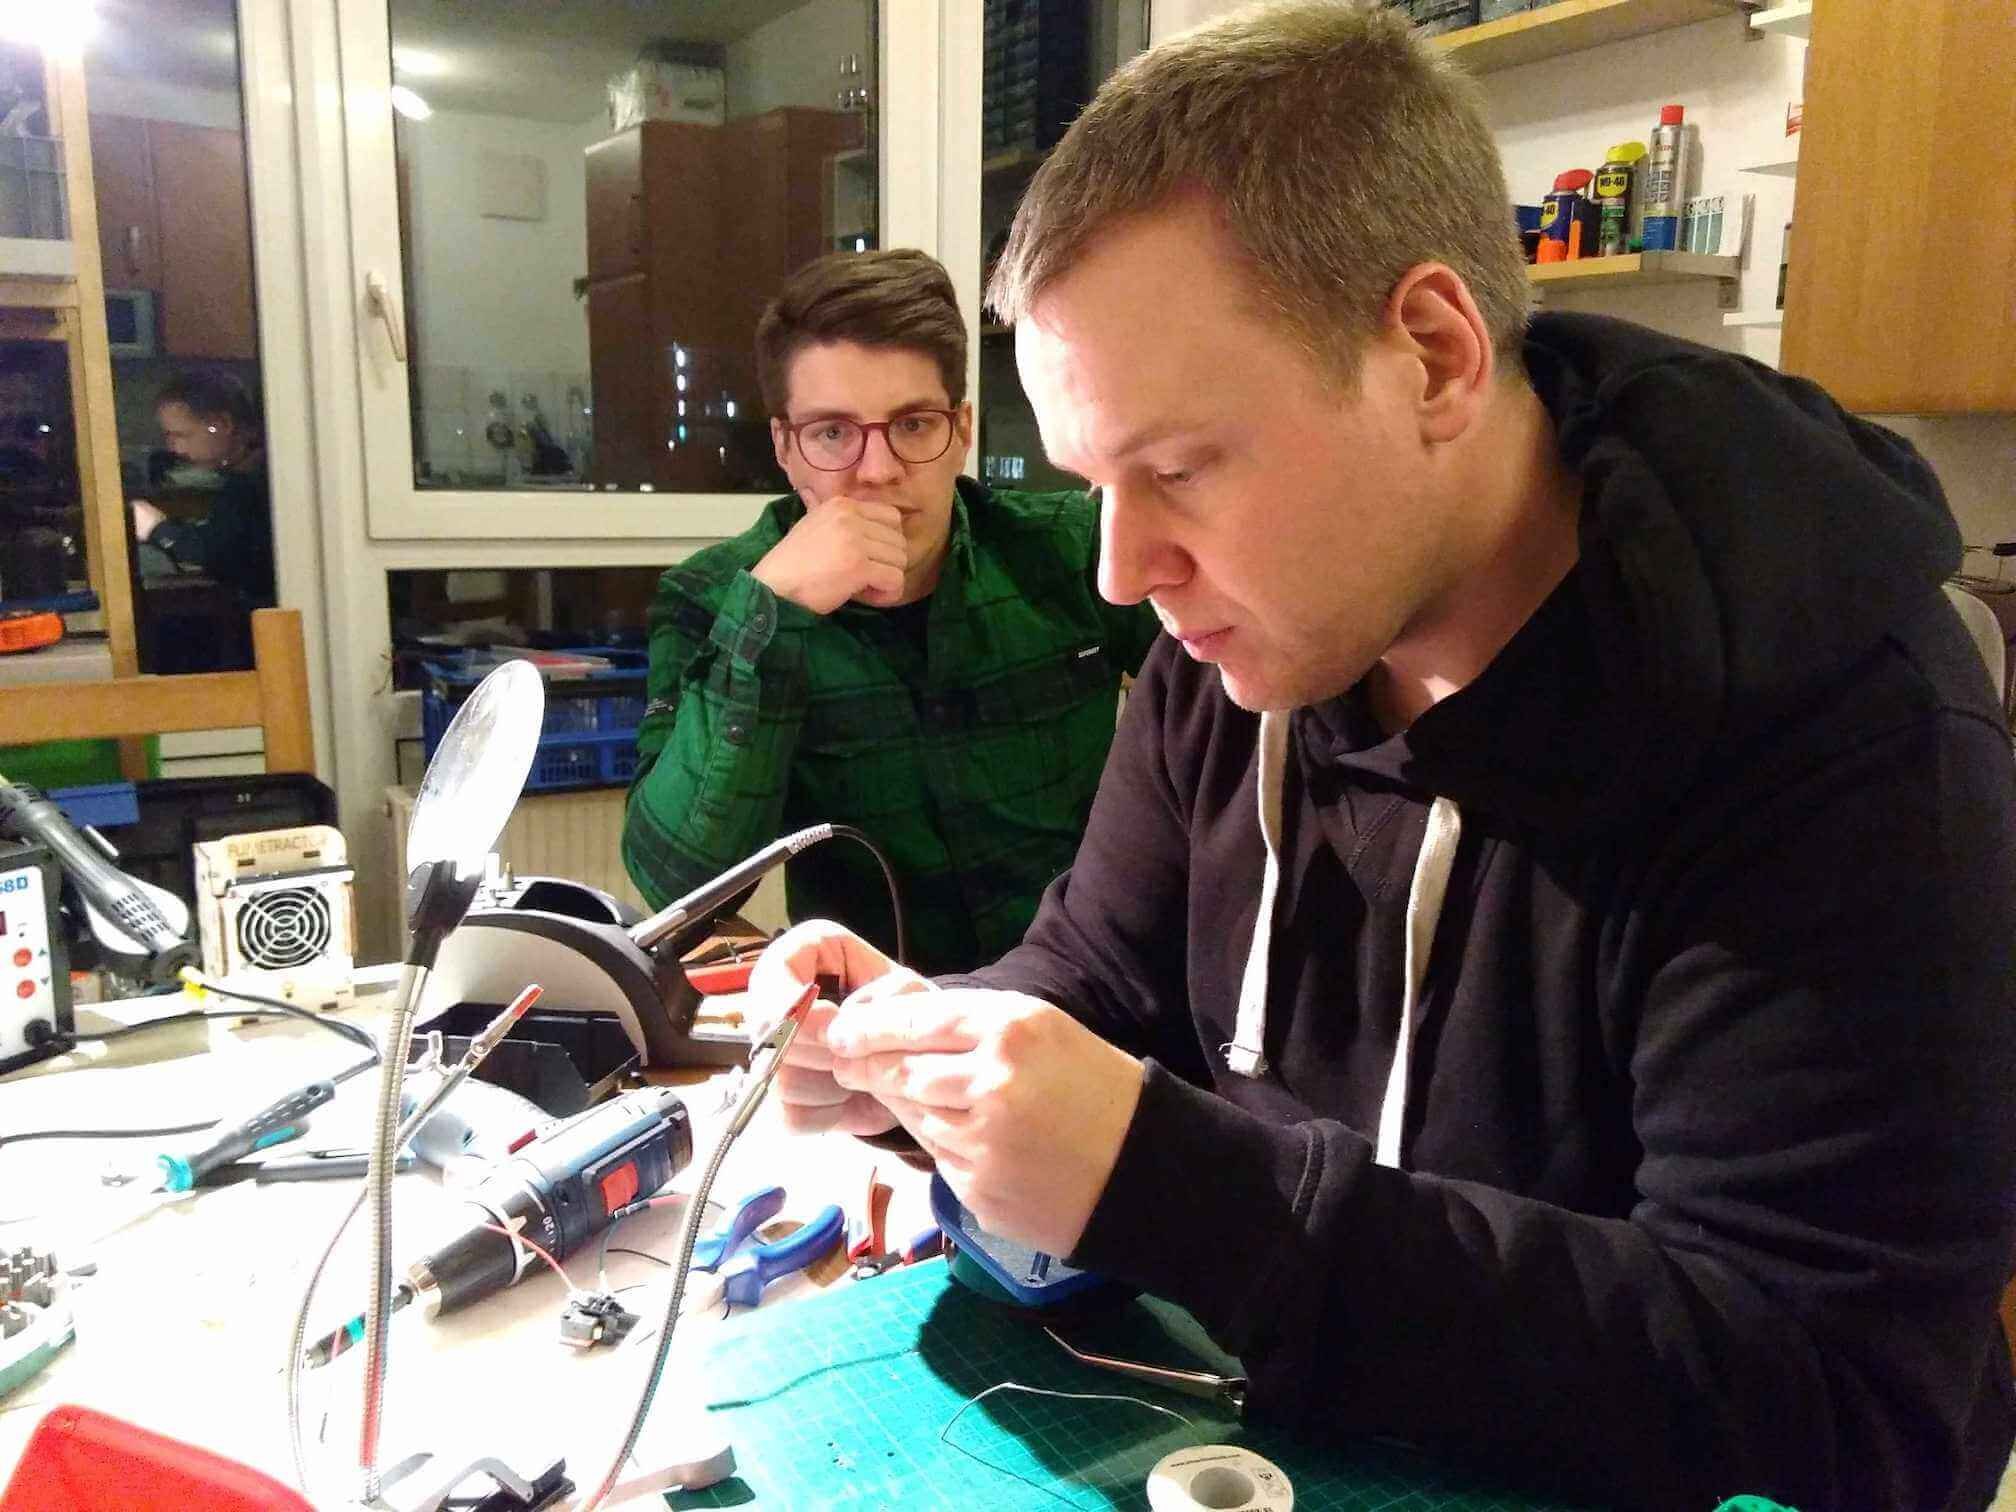 things with buzzers: Lars Heß needs to fix Andy Grunwald's hardware bugs.